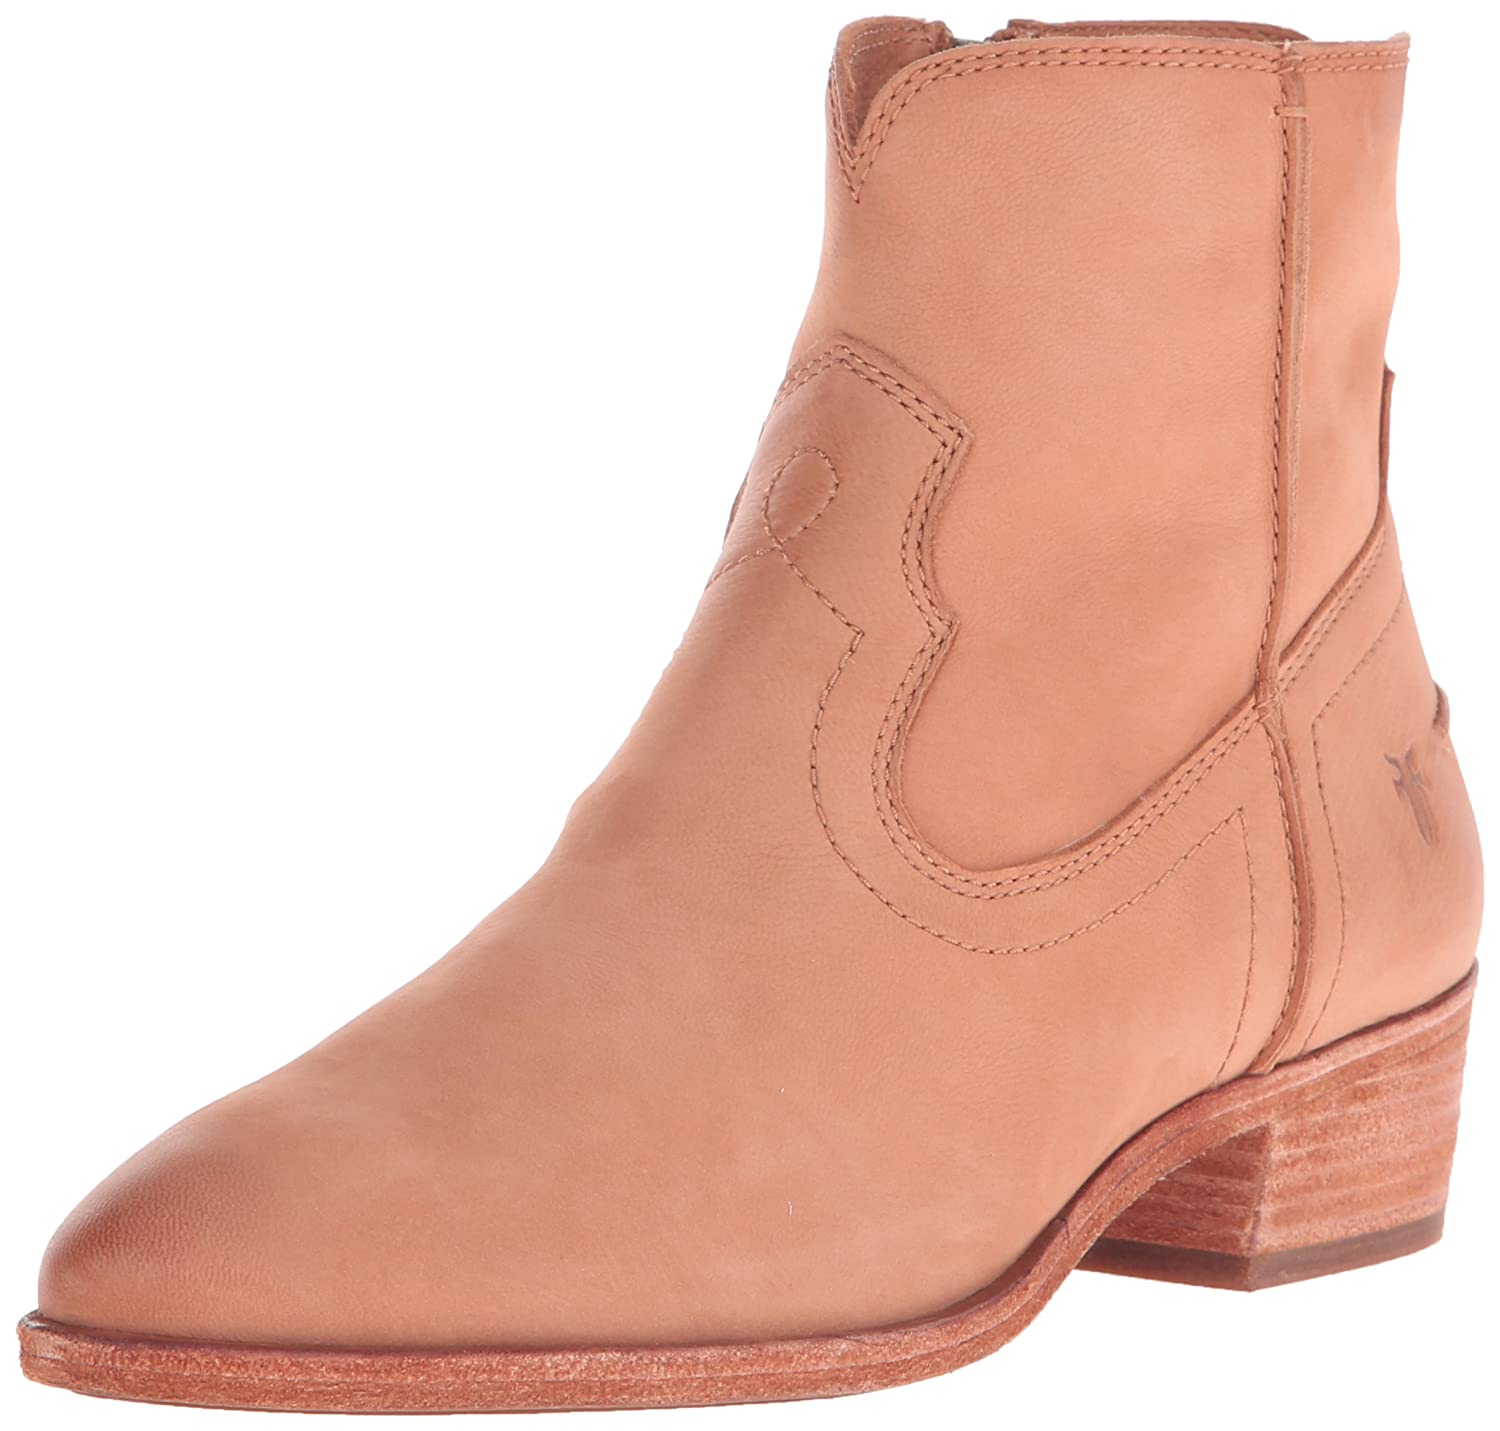 FRYE Women's Ray Seam Short Boot B01015MGLE 7.5 B(M) US|Camel Soft Oiled Leather-75884